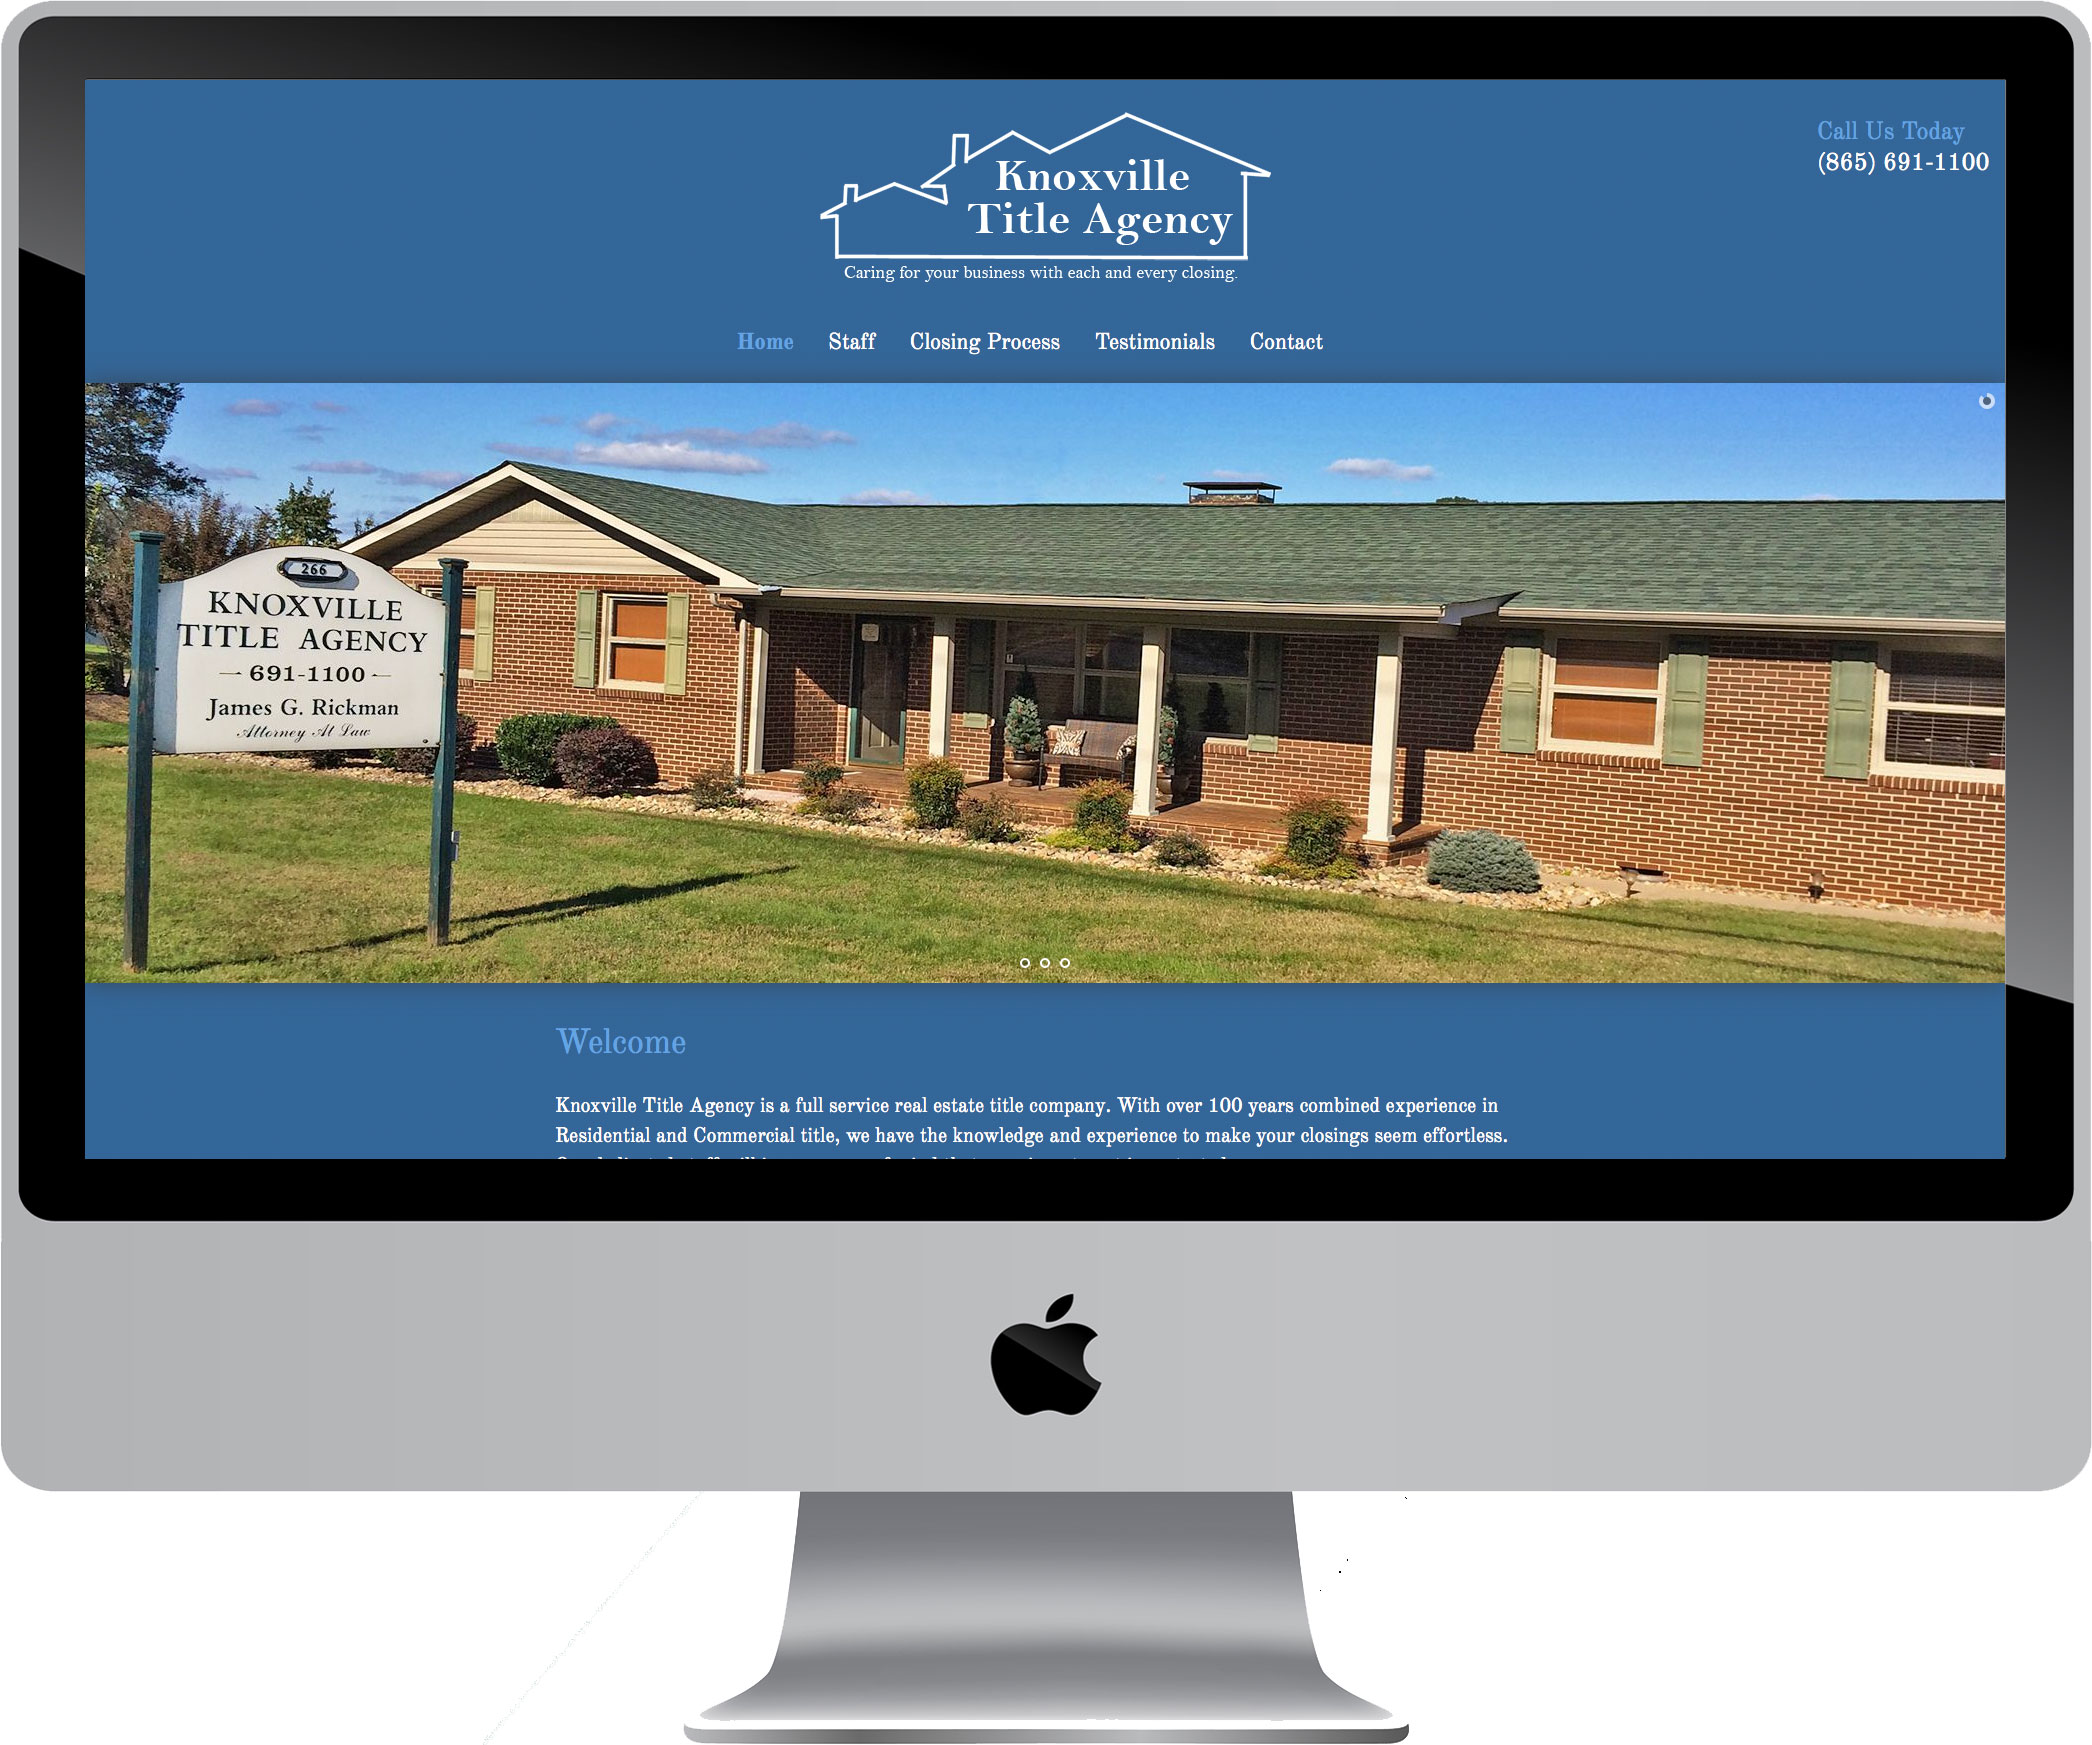 Knoxville Title Agency on a Desktop